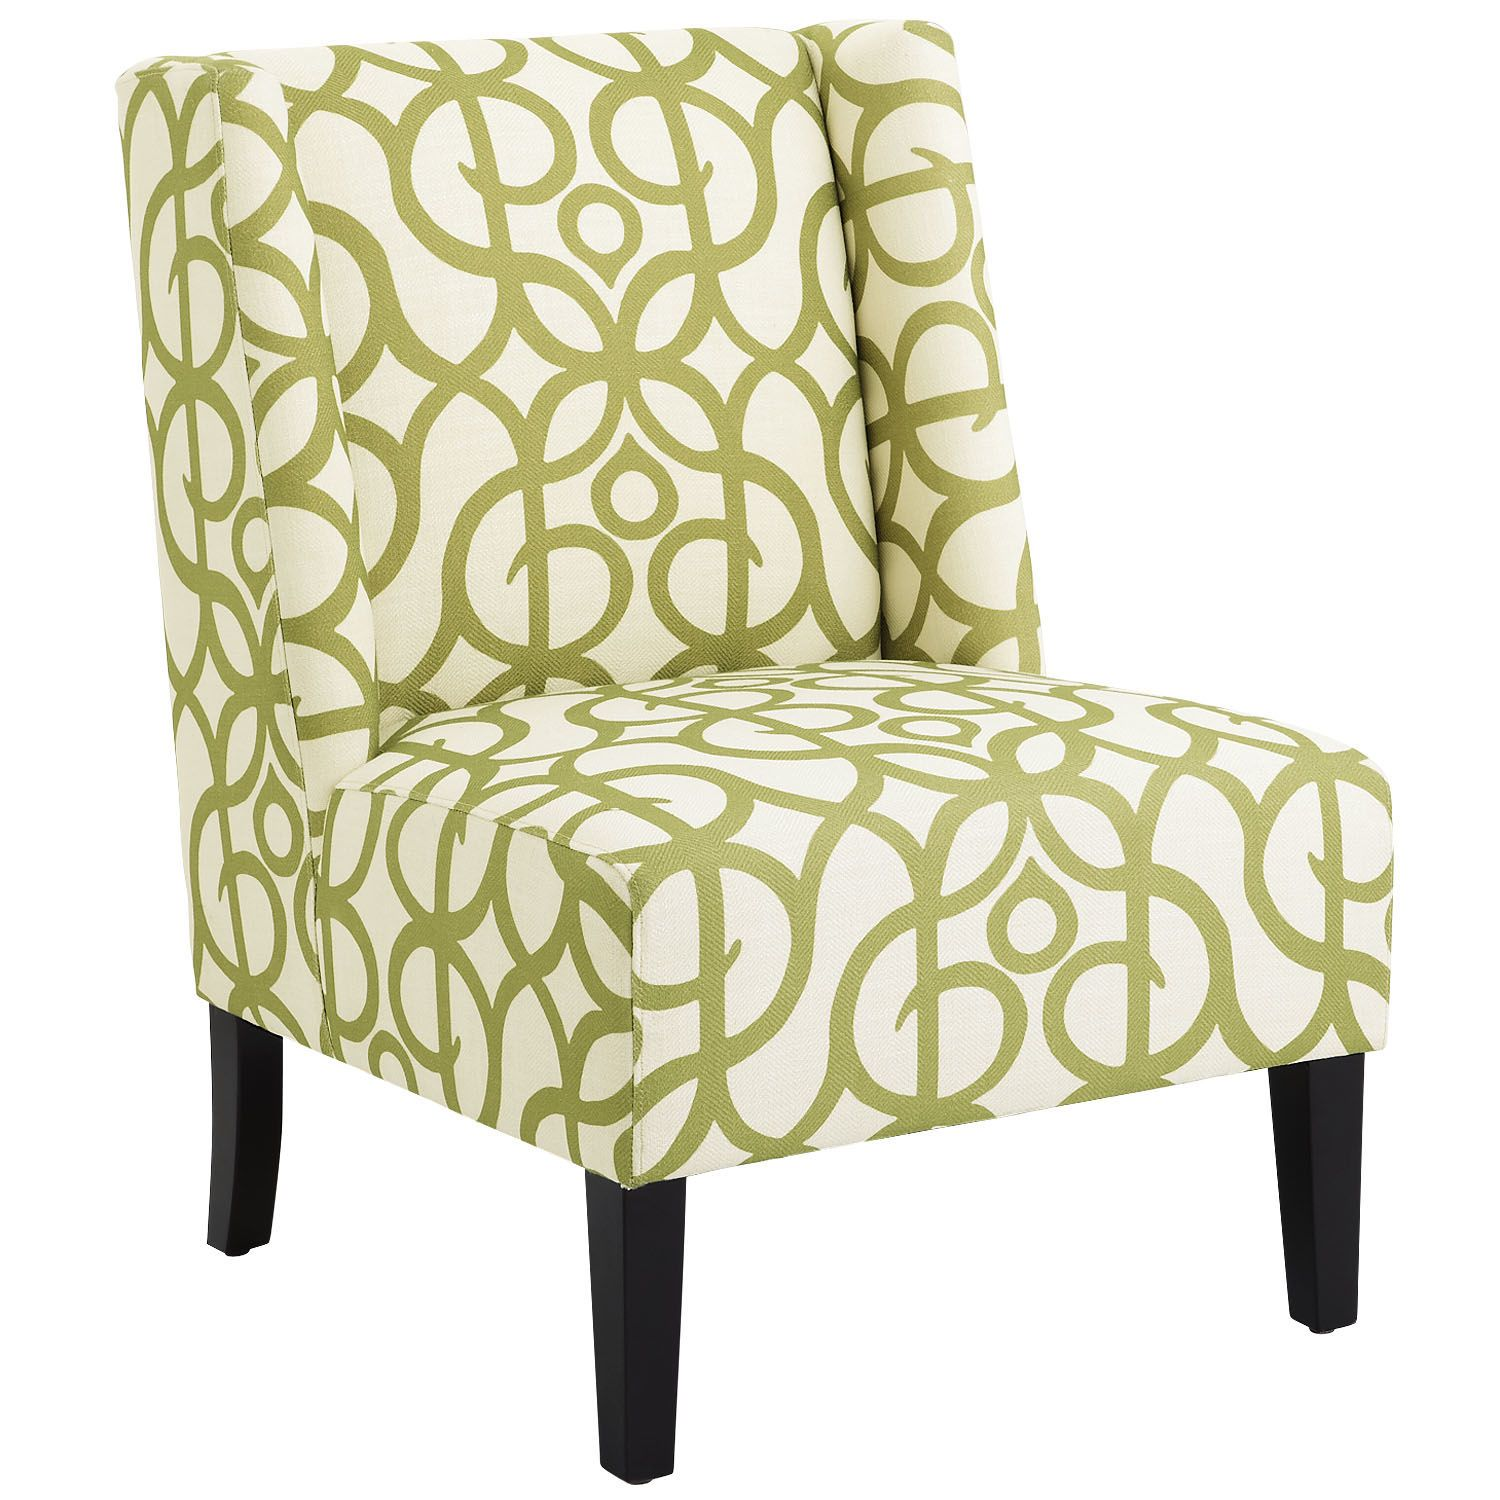 Owen Wing Chair - Metro Pear   Pier 1 Imports   For the Home ...